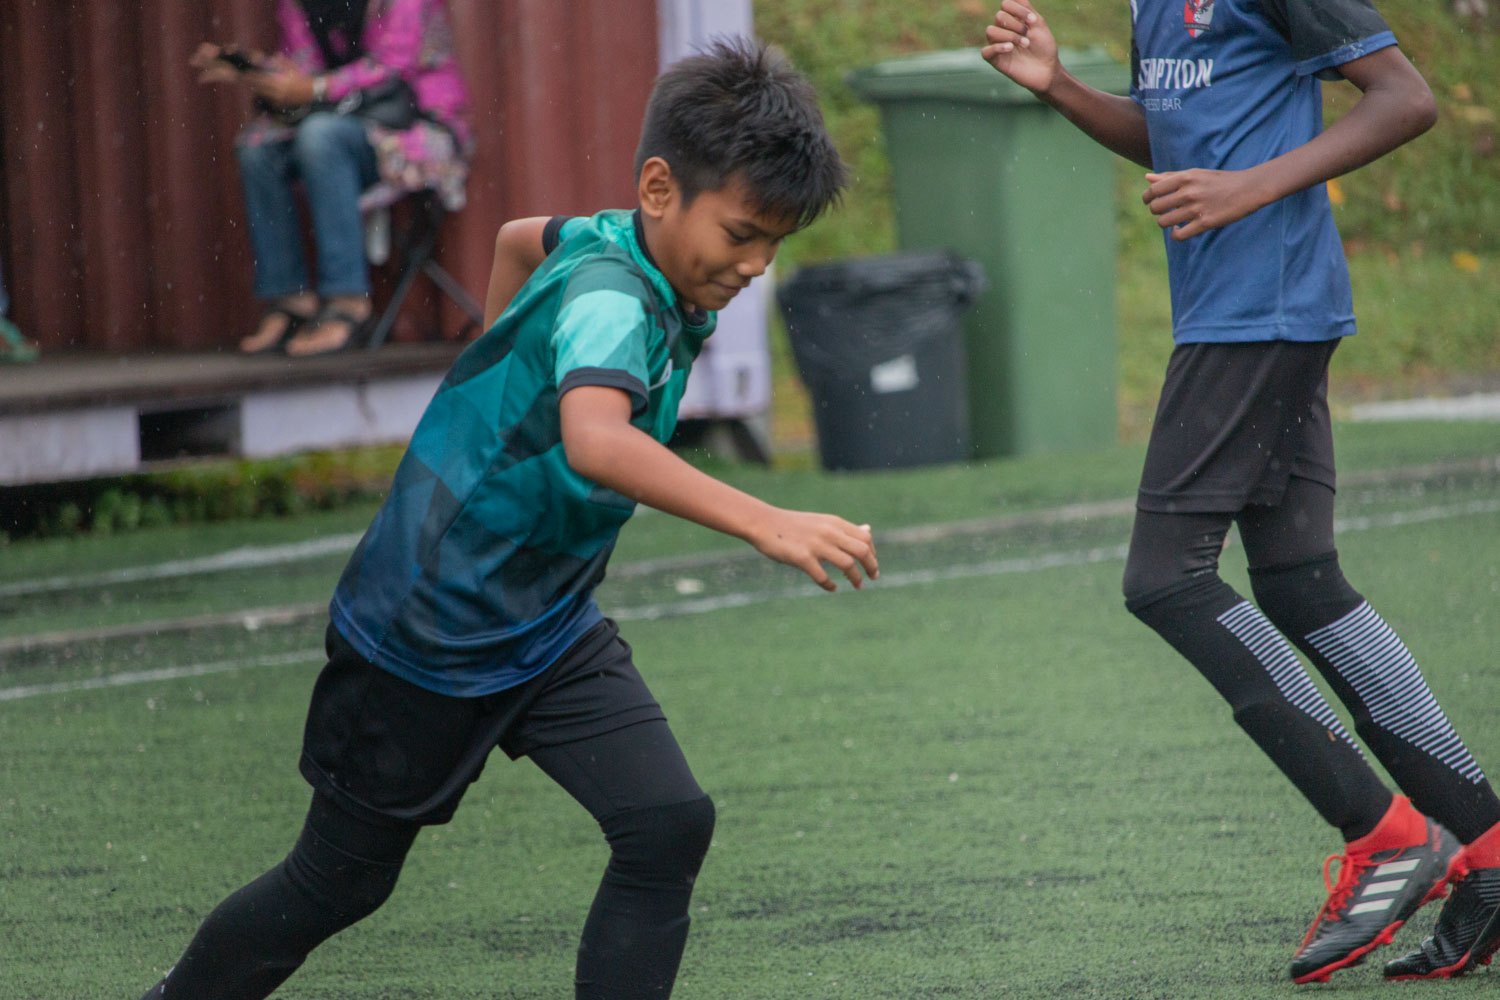 Join the FC Kuala Lumpur elite youth soccer trials